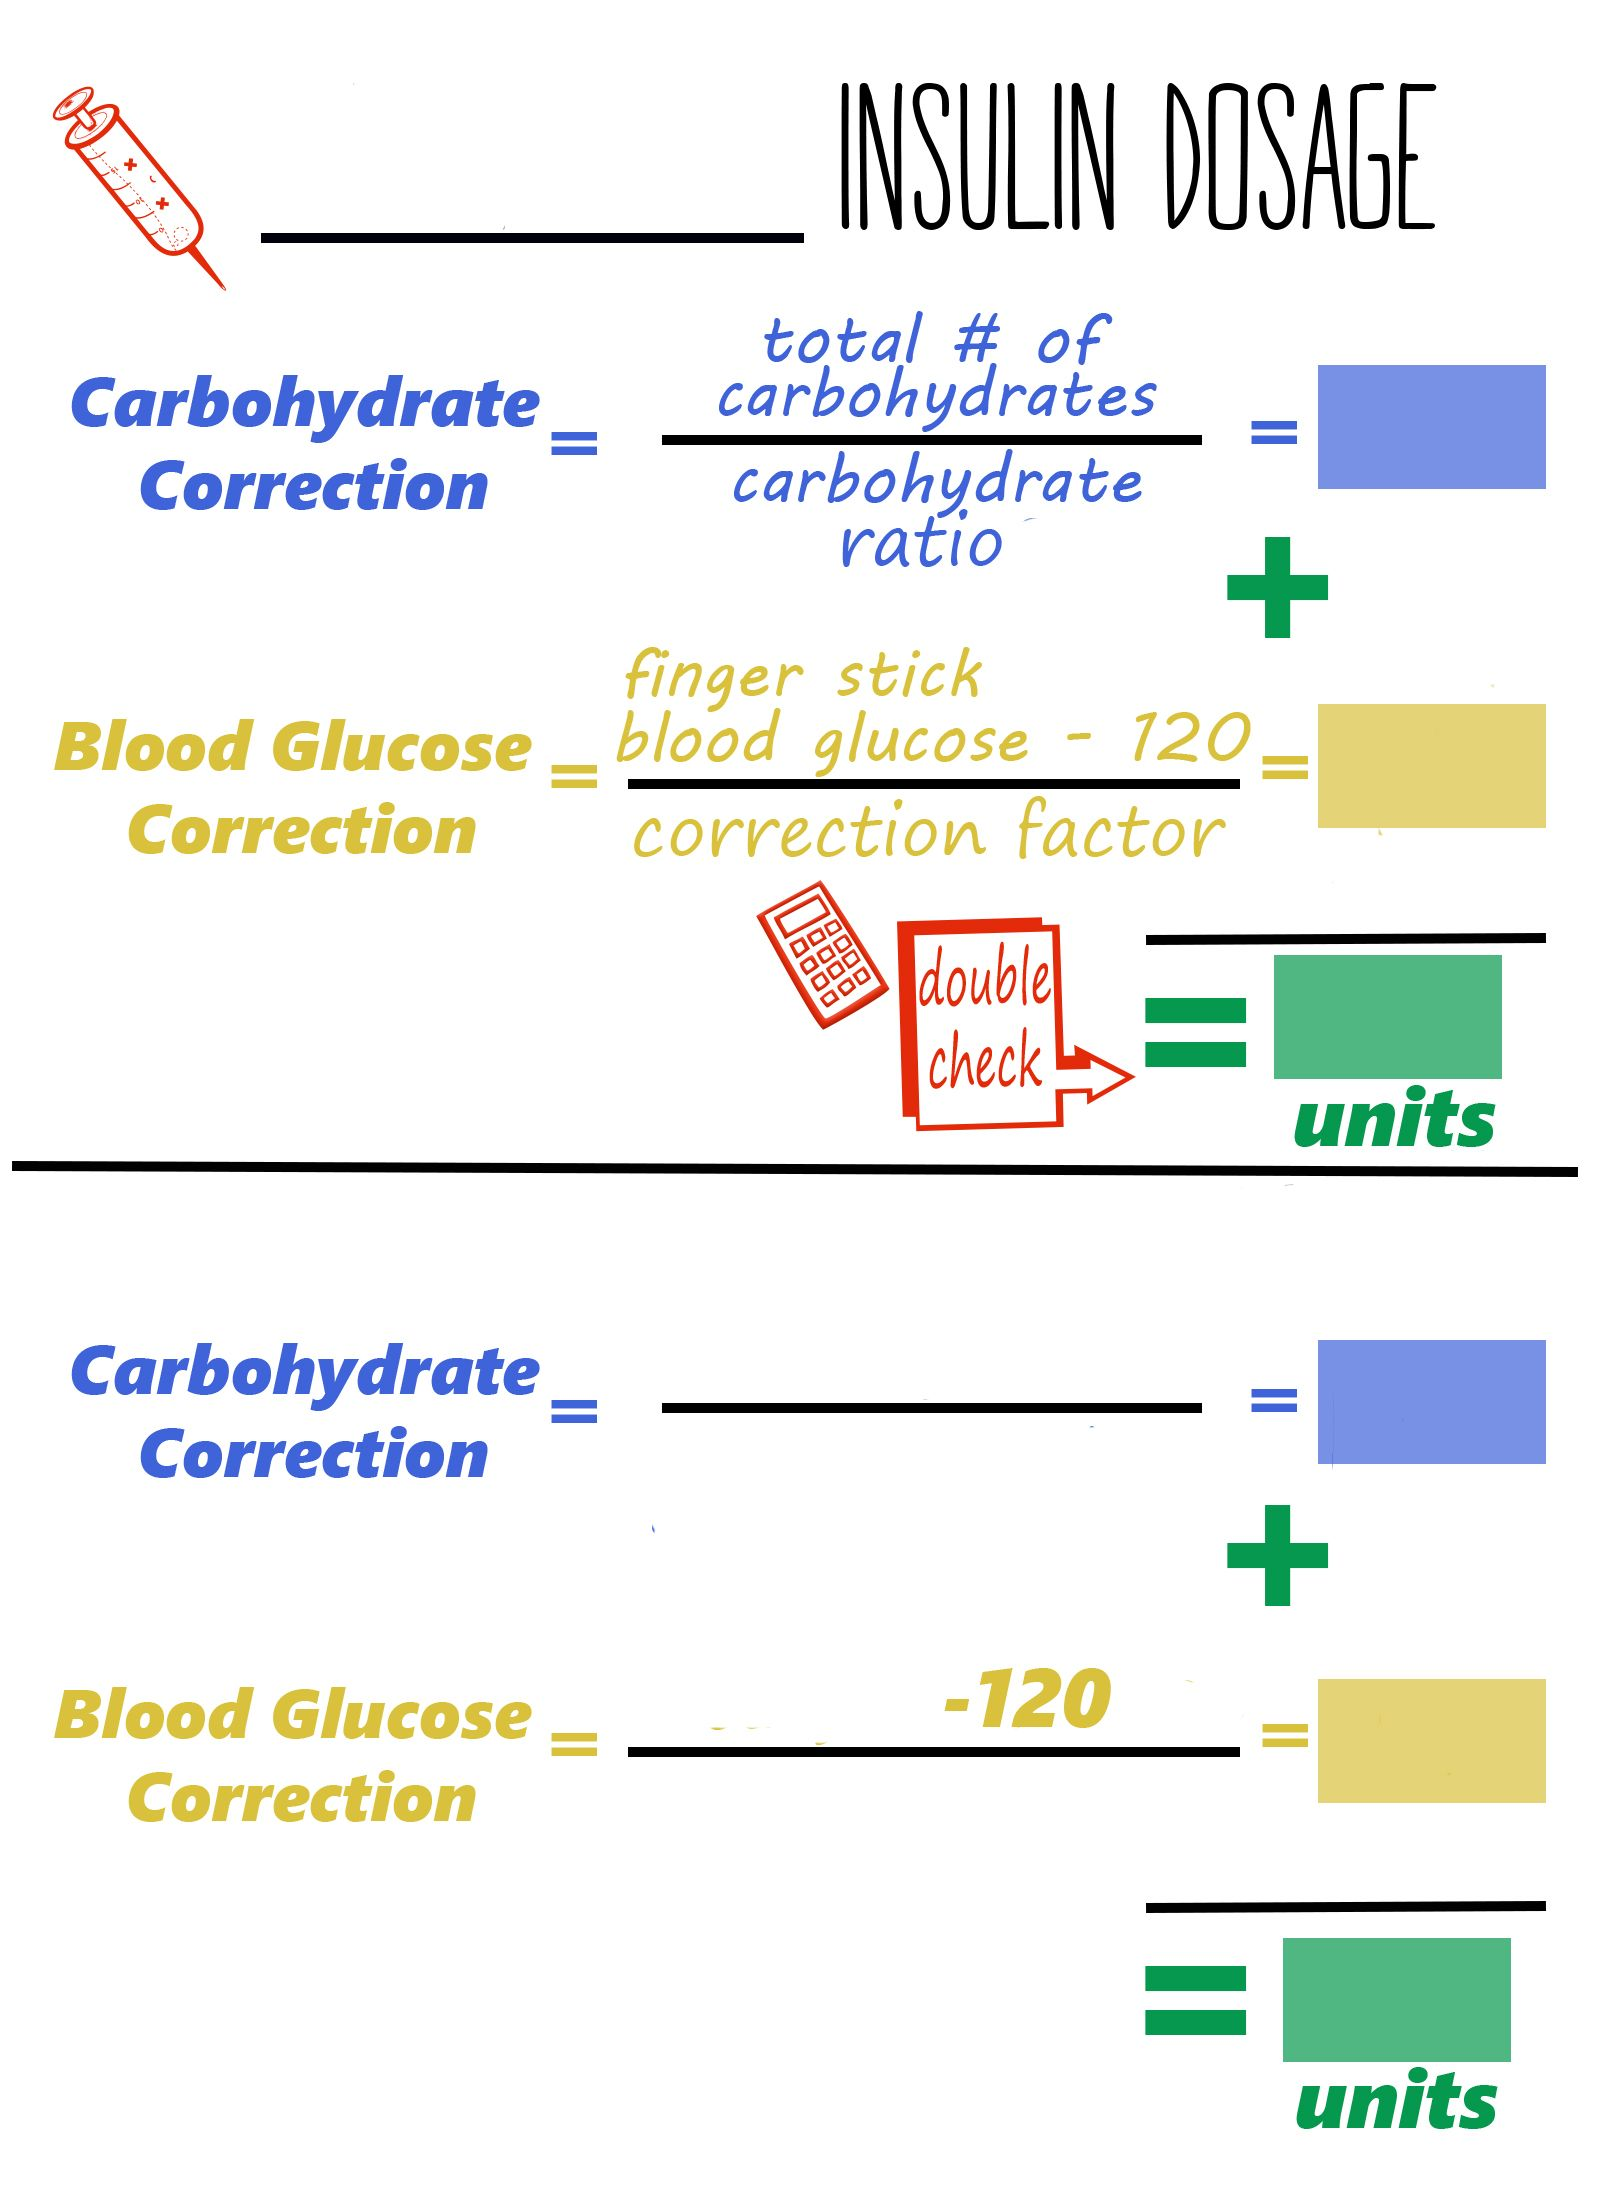 Cheat Sheet For Insulin Dosage Great For The Type 1 Child